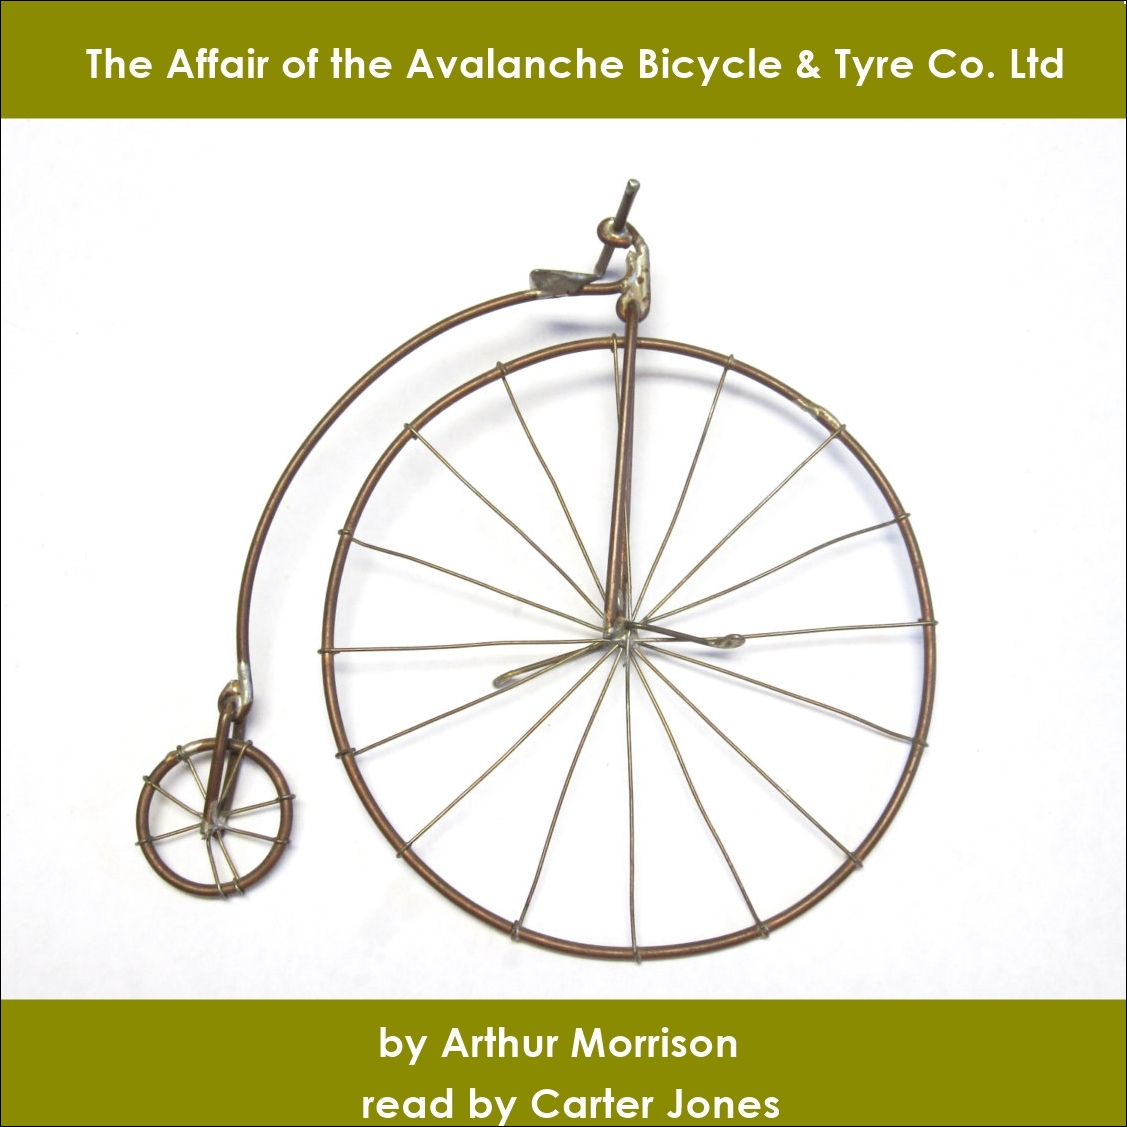 The Affair of the Avalanche Bicycle & Tyre Co. Ltd [DD]